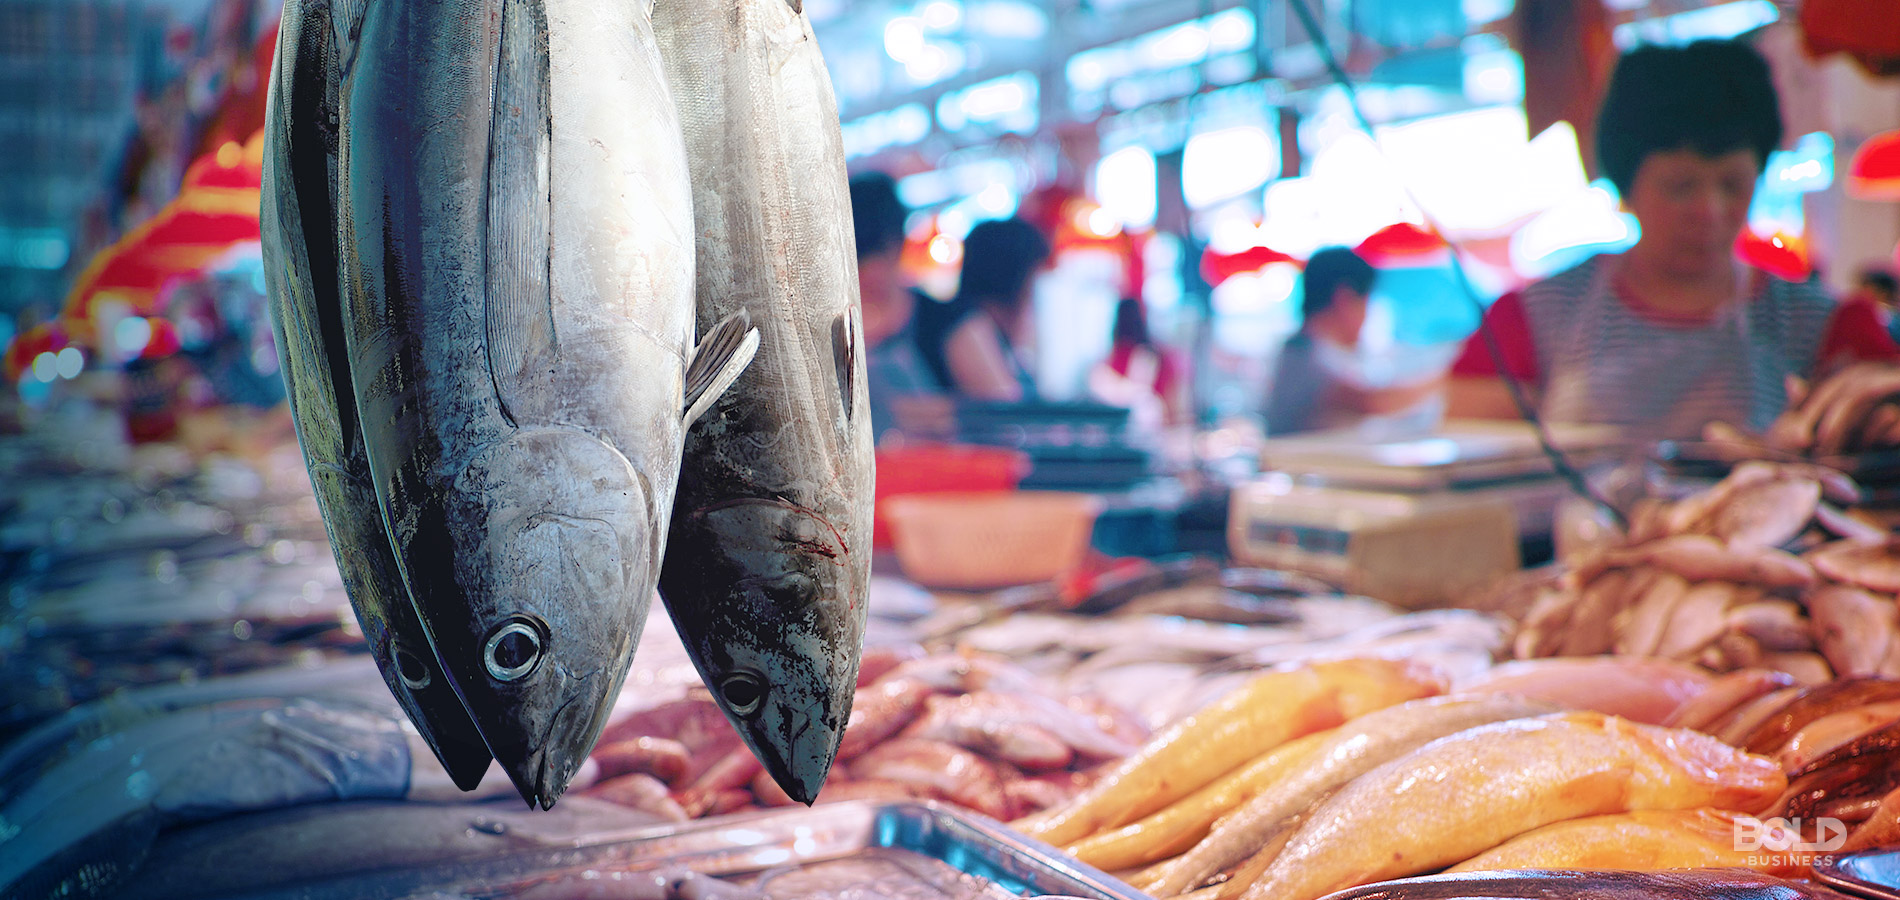 a photo of a couple of fresh fish hanging from a wet market stall in front of a background of market sellers busy with selling their fish amid the rise of aquaculture and fisheries